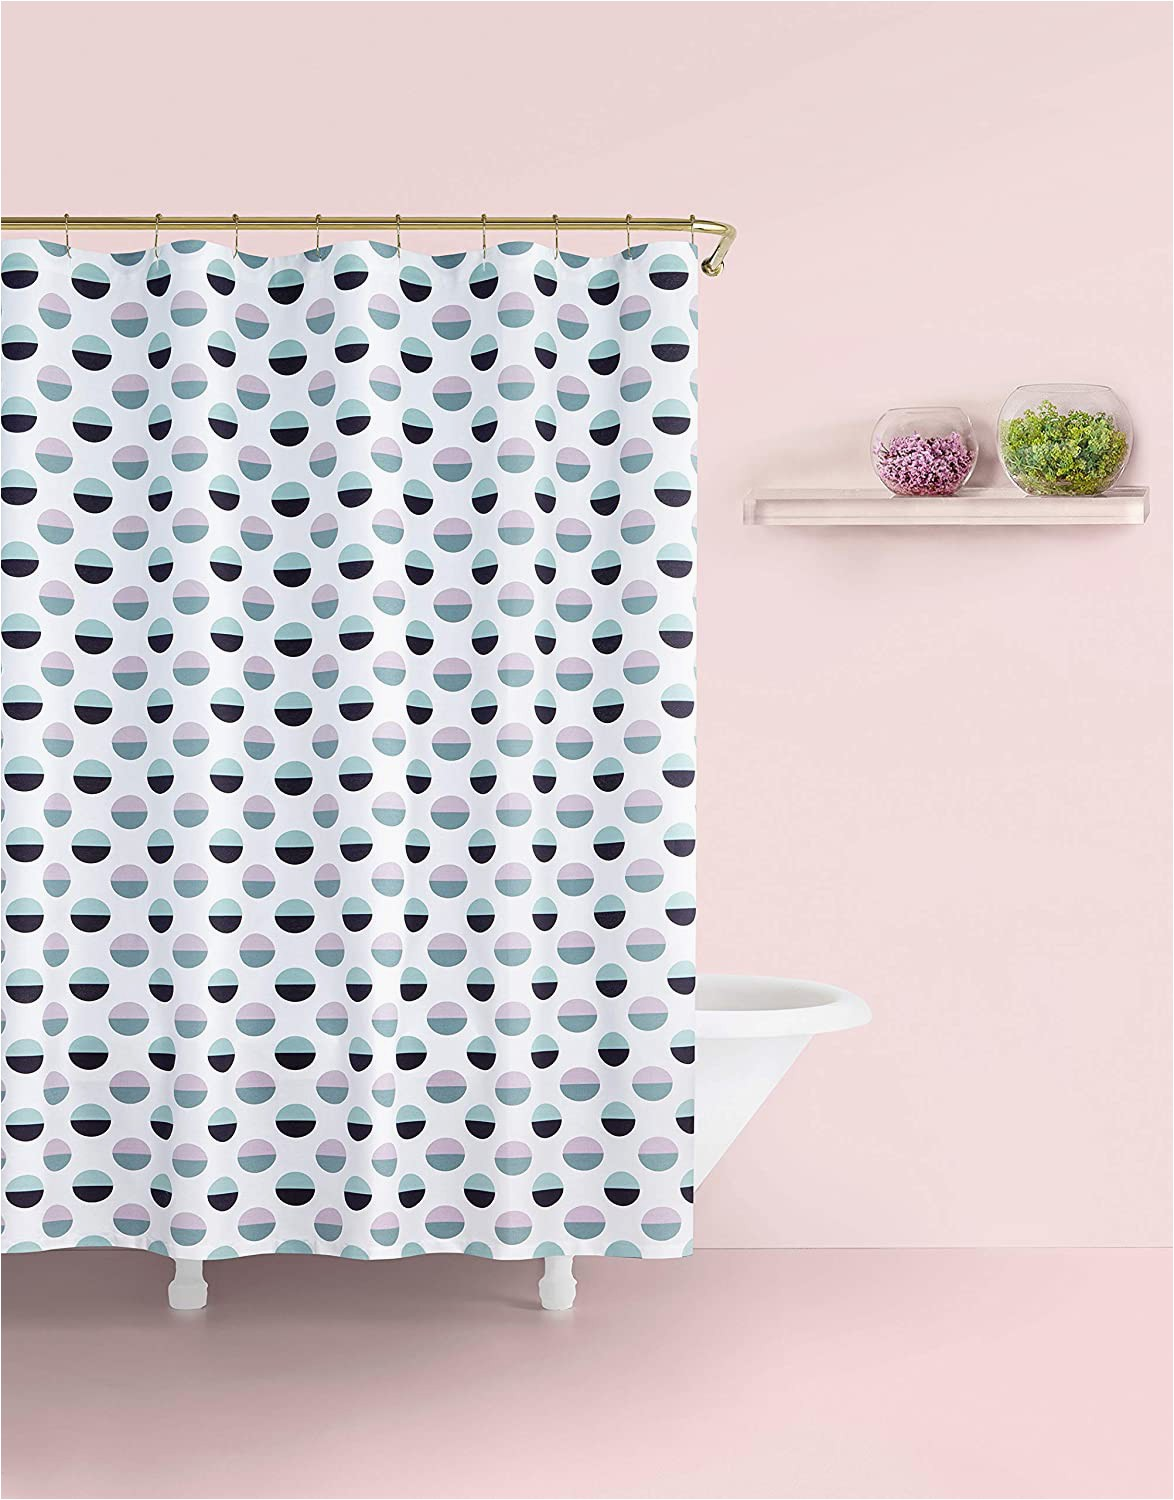 "Kate Spade Deco Dot Bath Rug Kate Spade New York Half Dot Shower Curtain 72"" White Navy Lavender Turquoise"